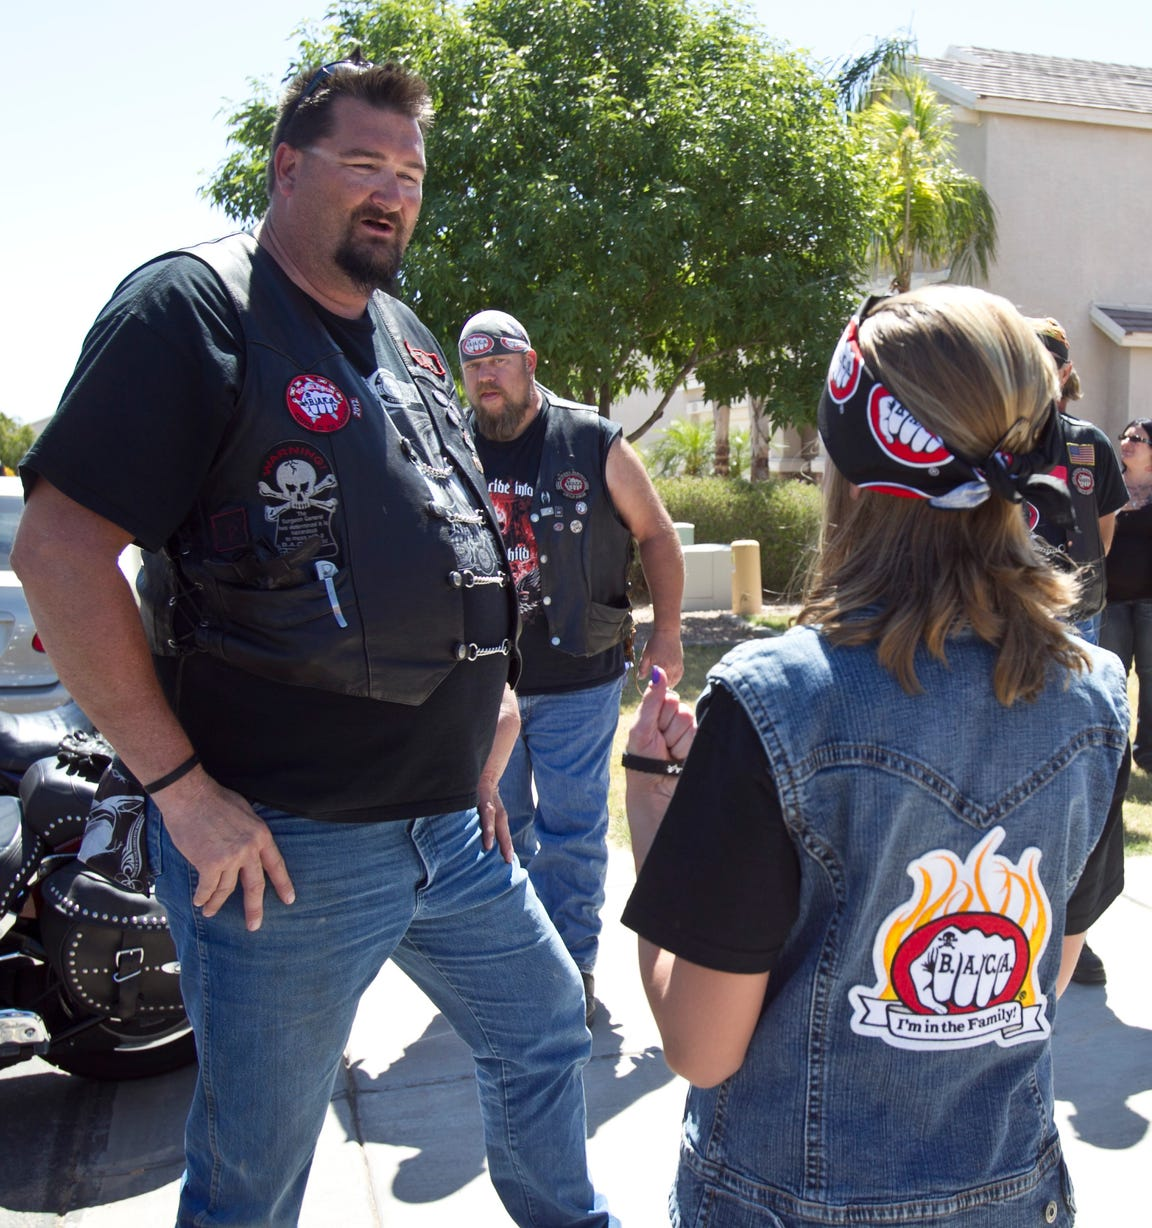 Tree, a member of Bikers Against Child Abuse, is excited that a new child that the group is serving has chosen his motorcycle to ride during the group's initiation process.